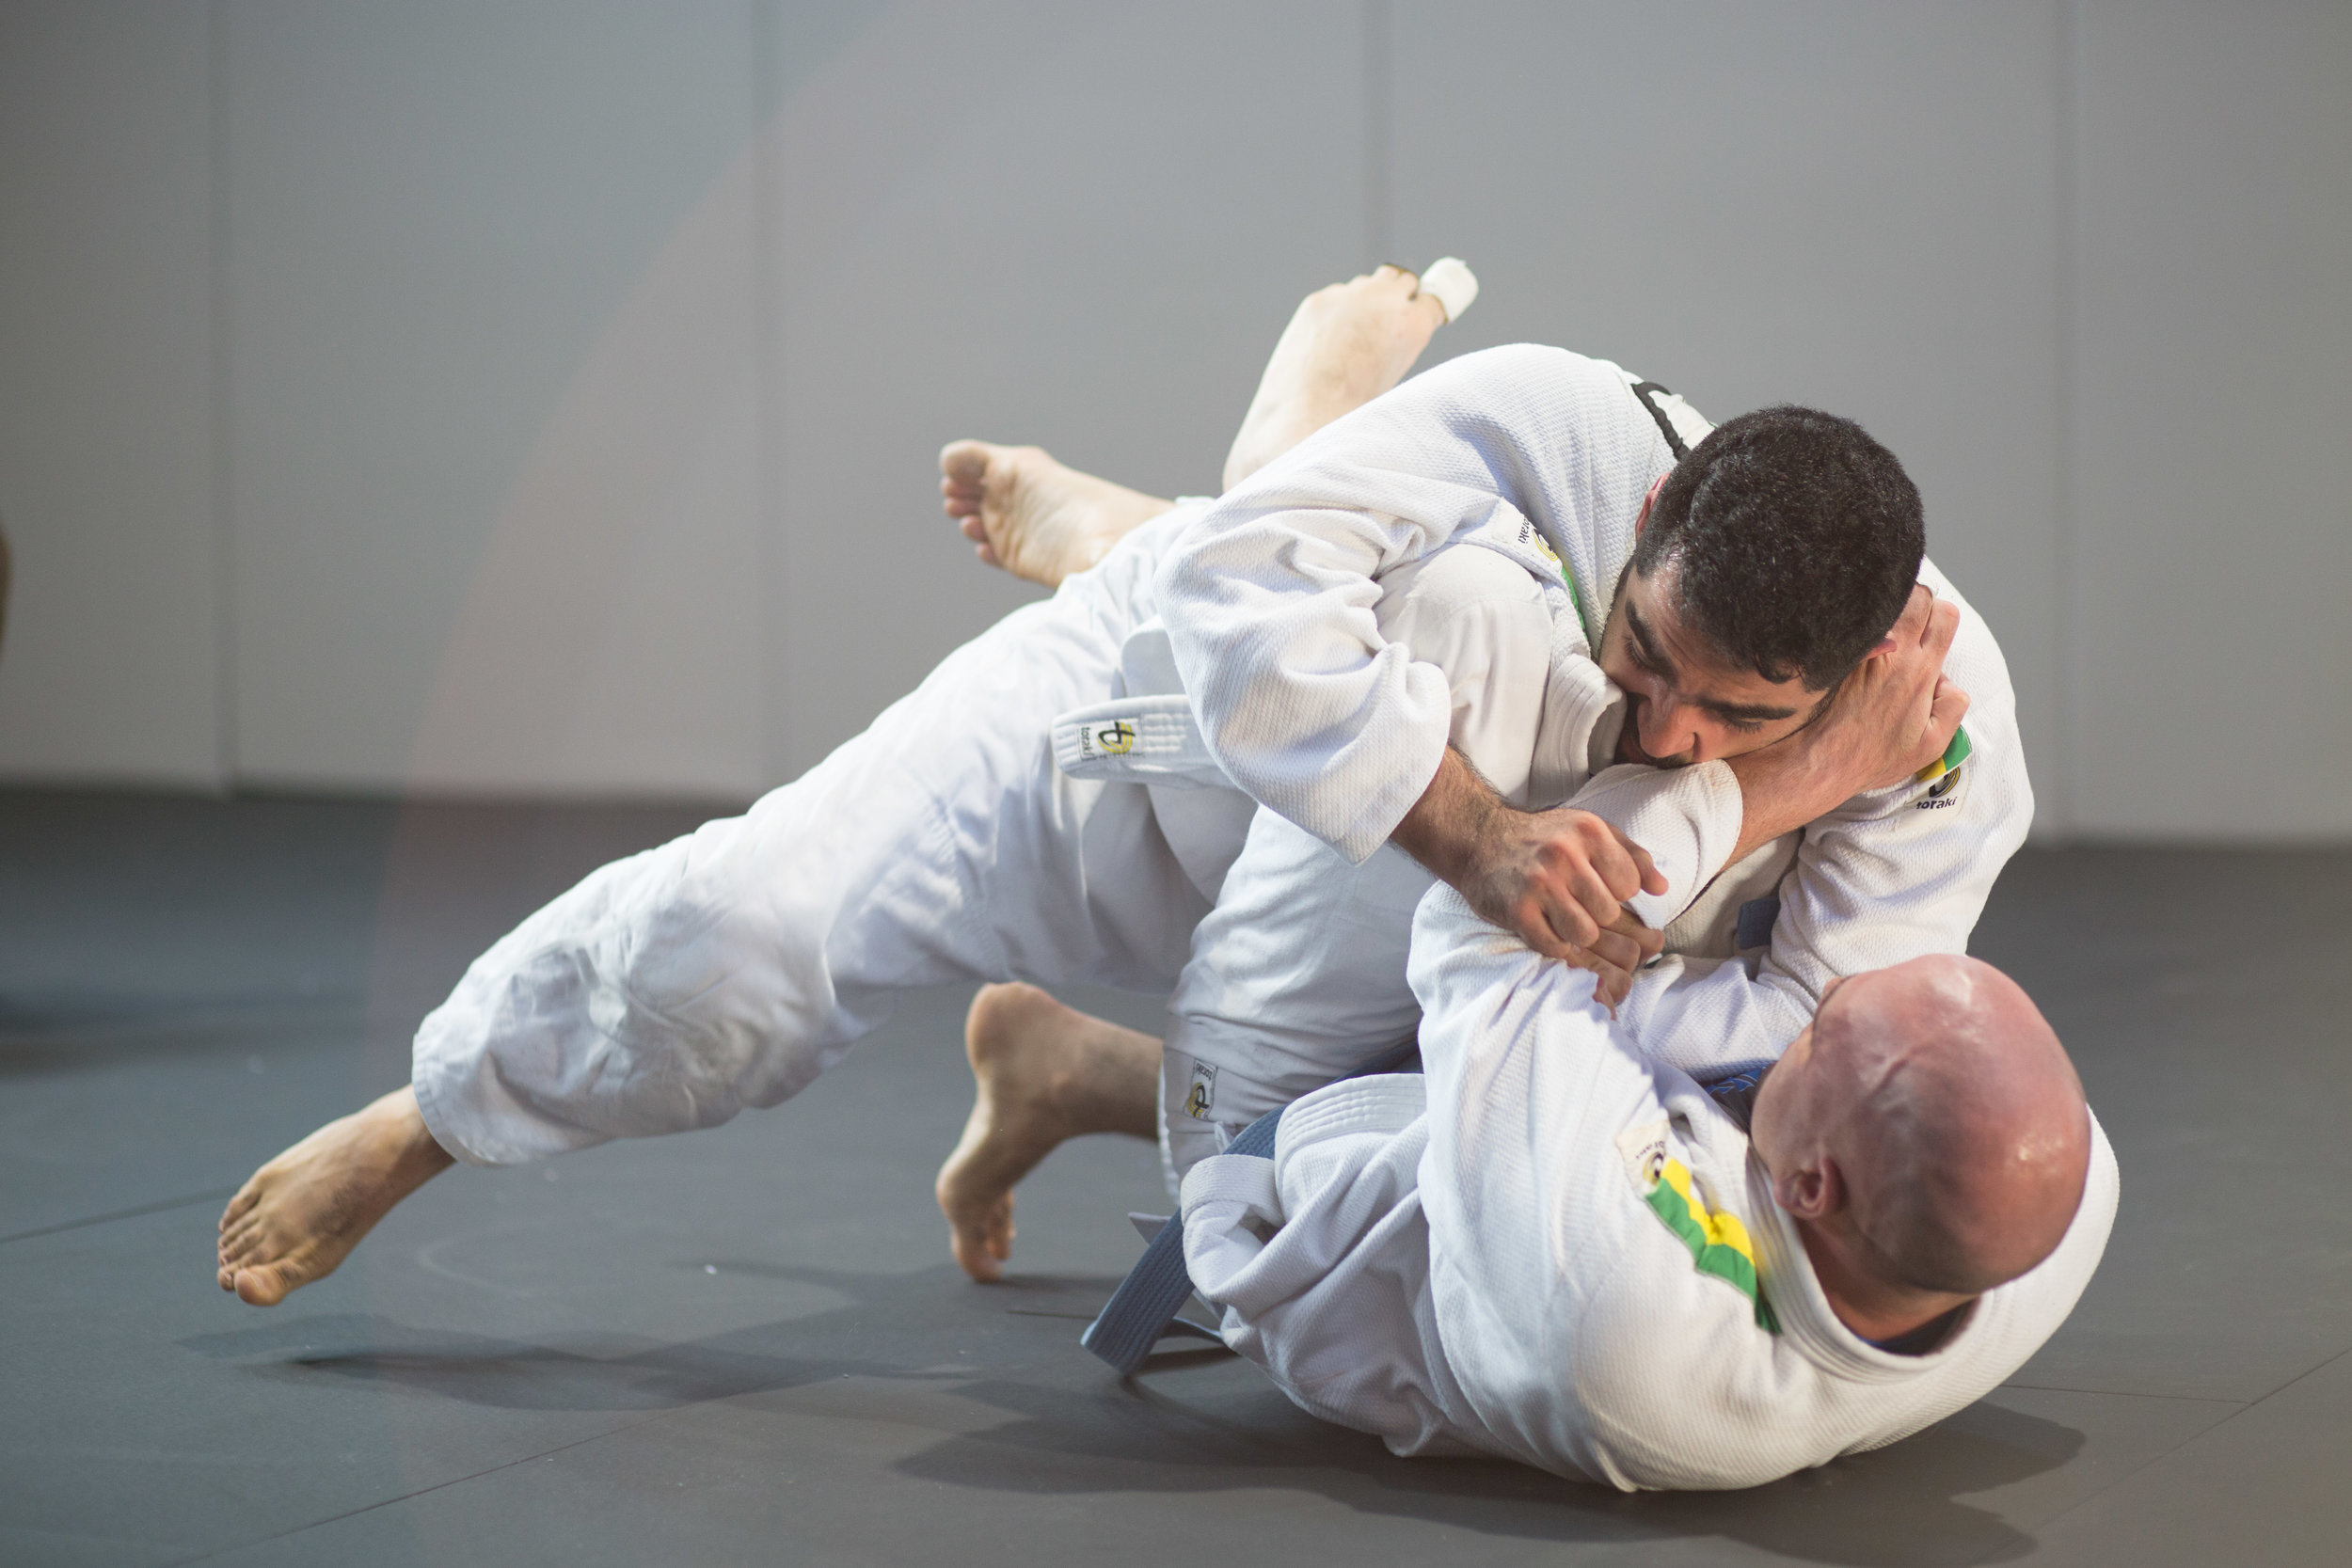 bjjprivateclasscoachingleadershipsessionclass4points